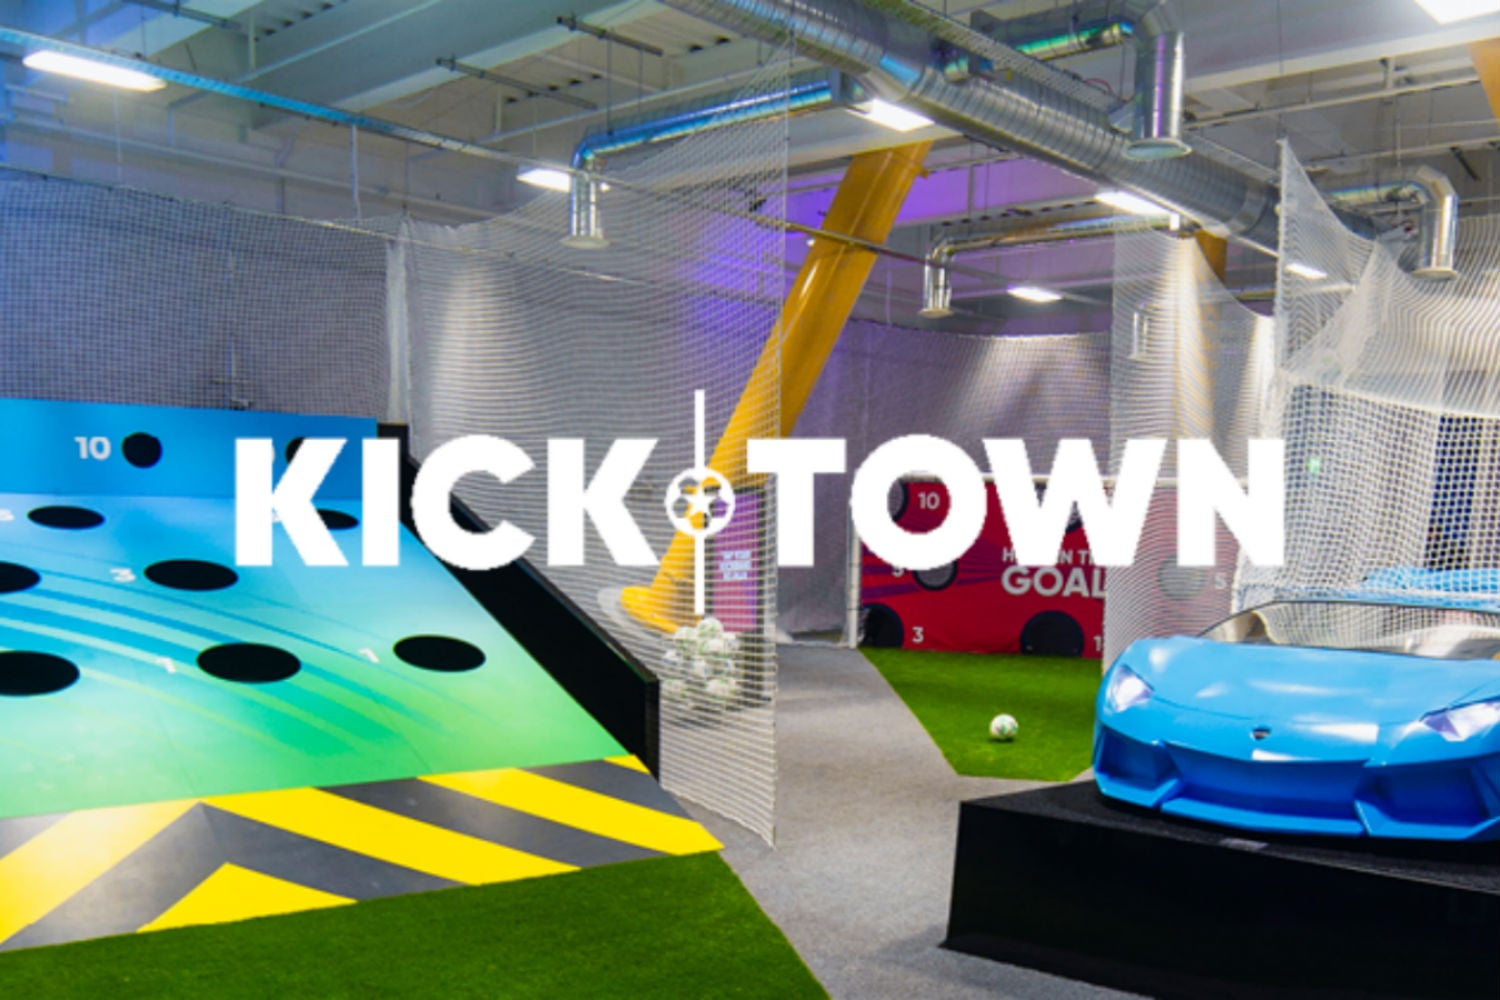 KickTown opens its doors at The O2